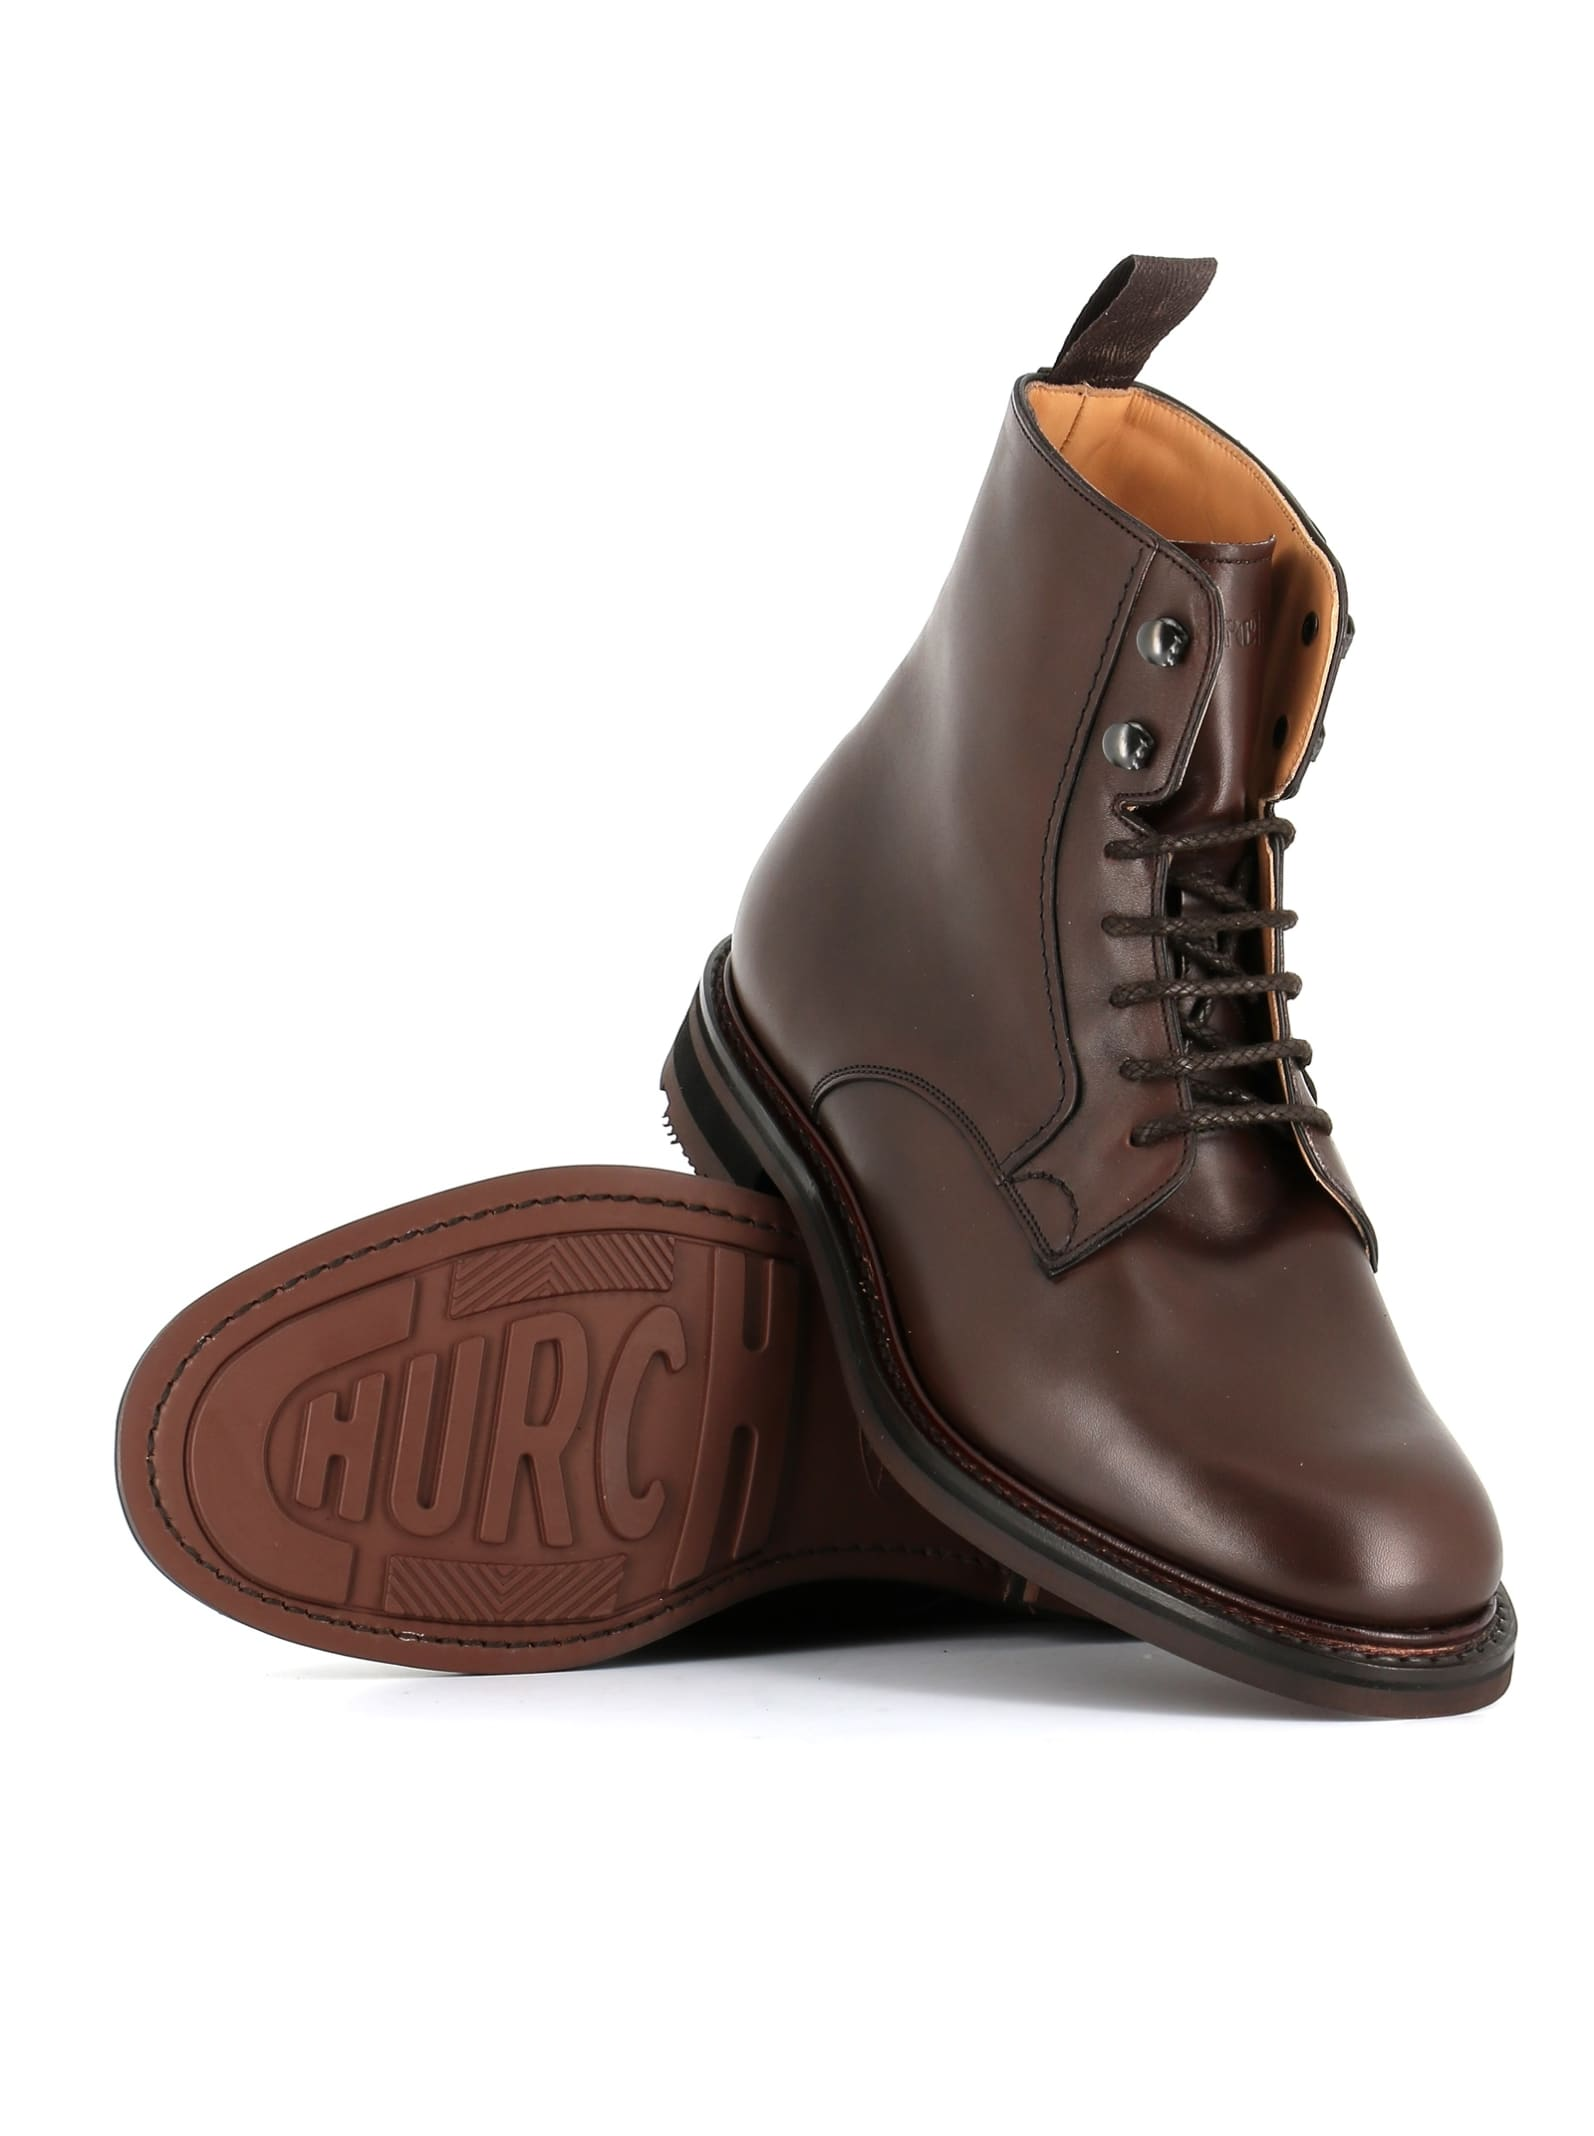 Churchs Lace-up Boot wootton